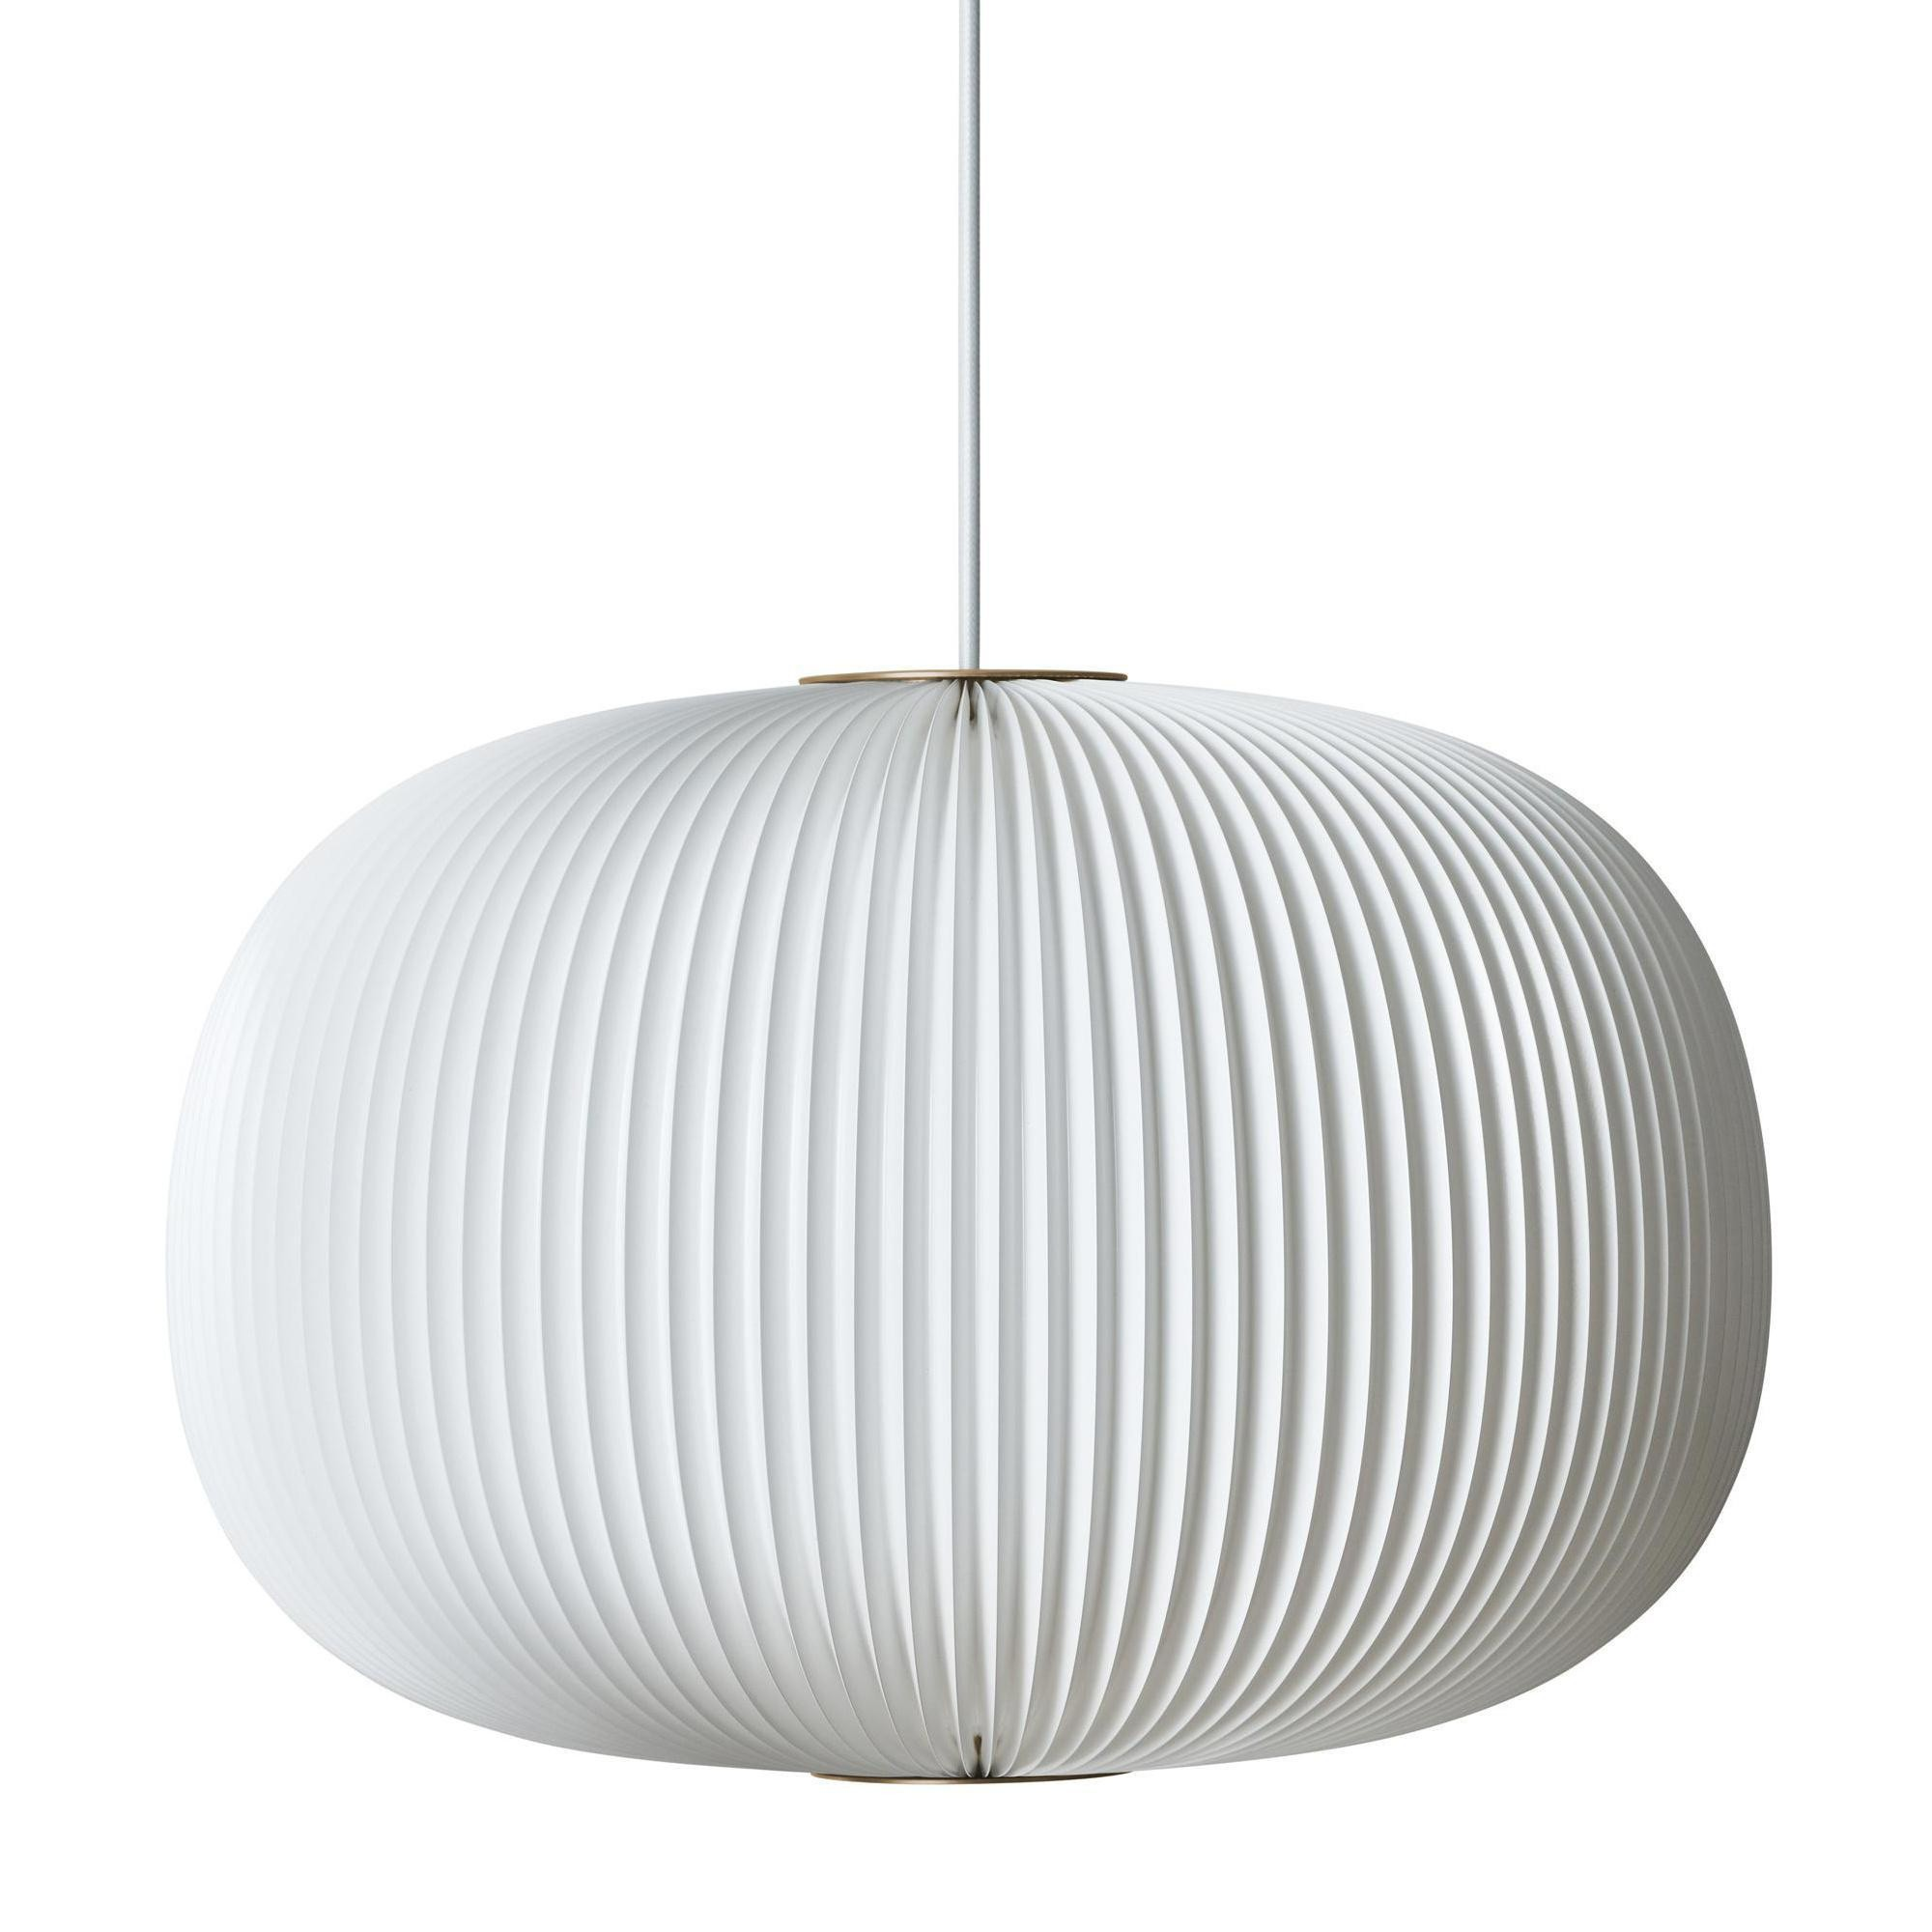 Lamella 1 Suspension Lamp